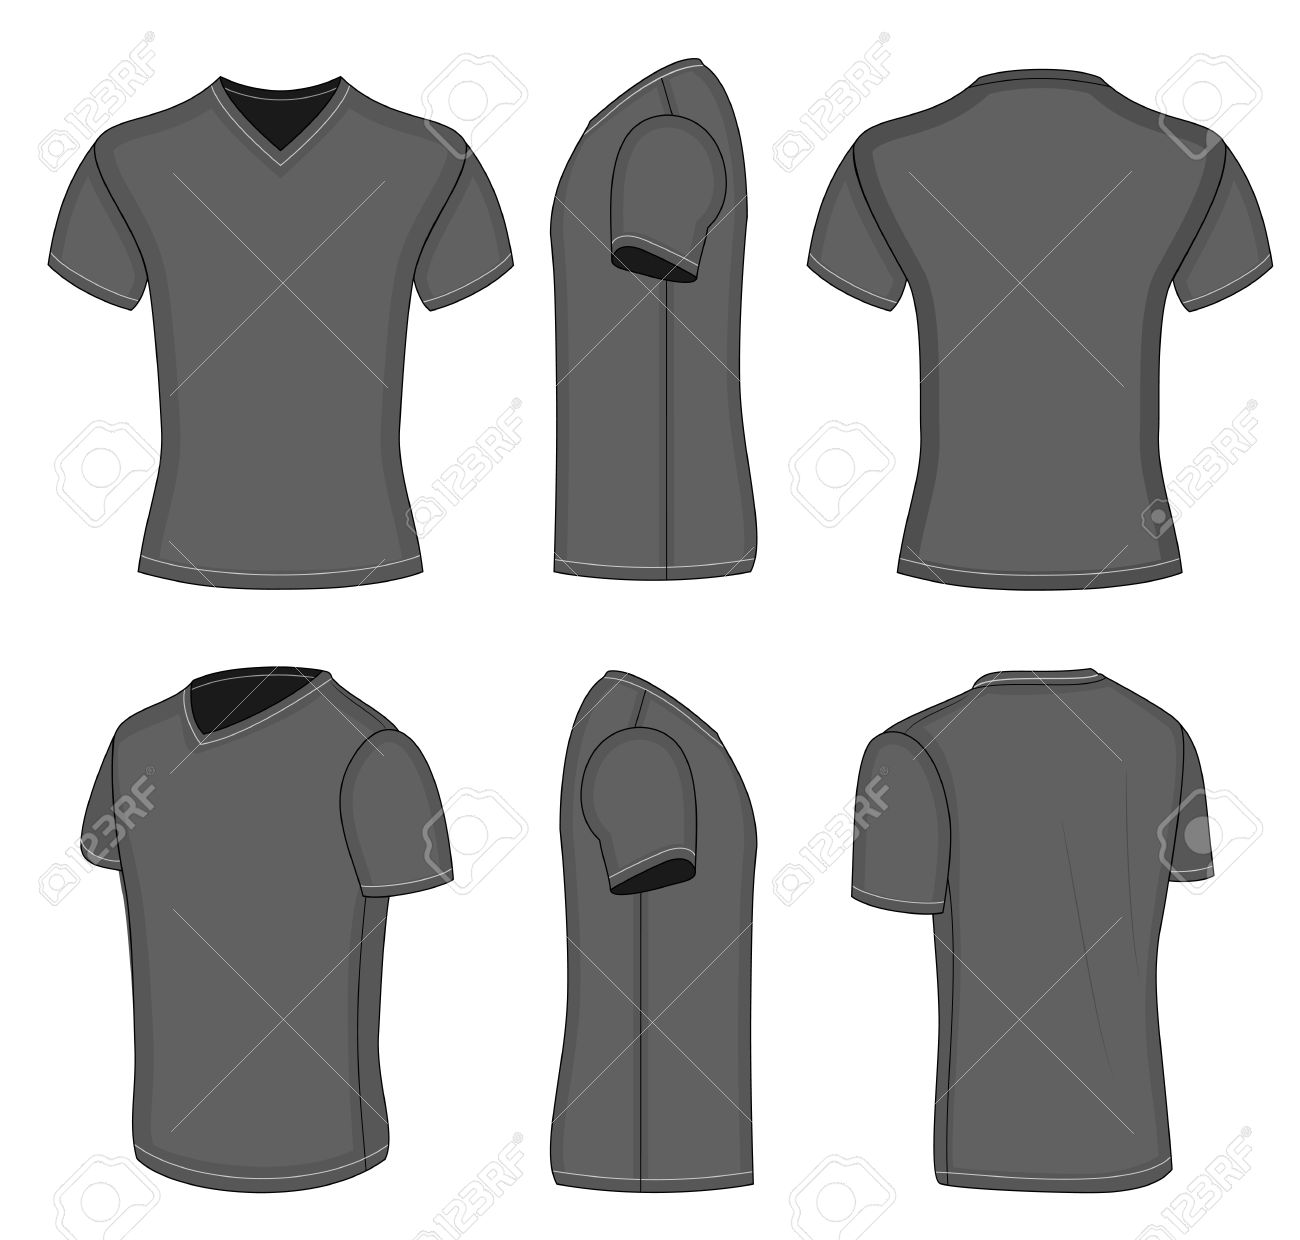 Black t shirt front and back - Black T Shirt Back And Front Template All Views Men S Black Short Sleeve T Download